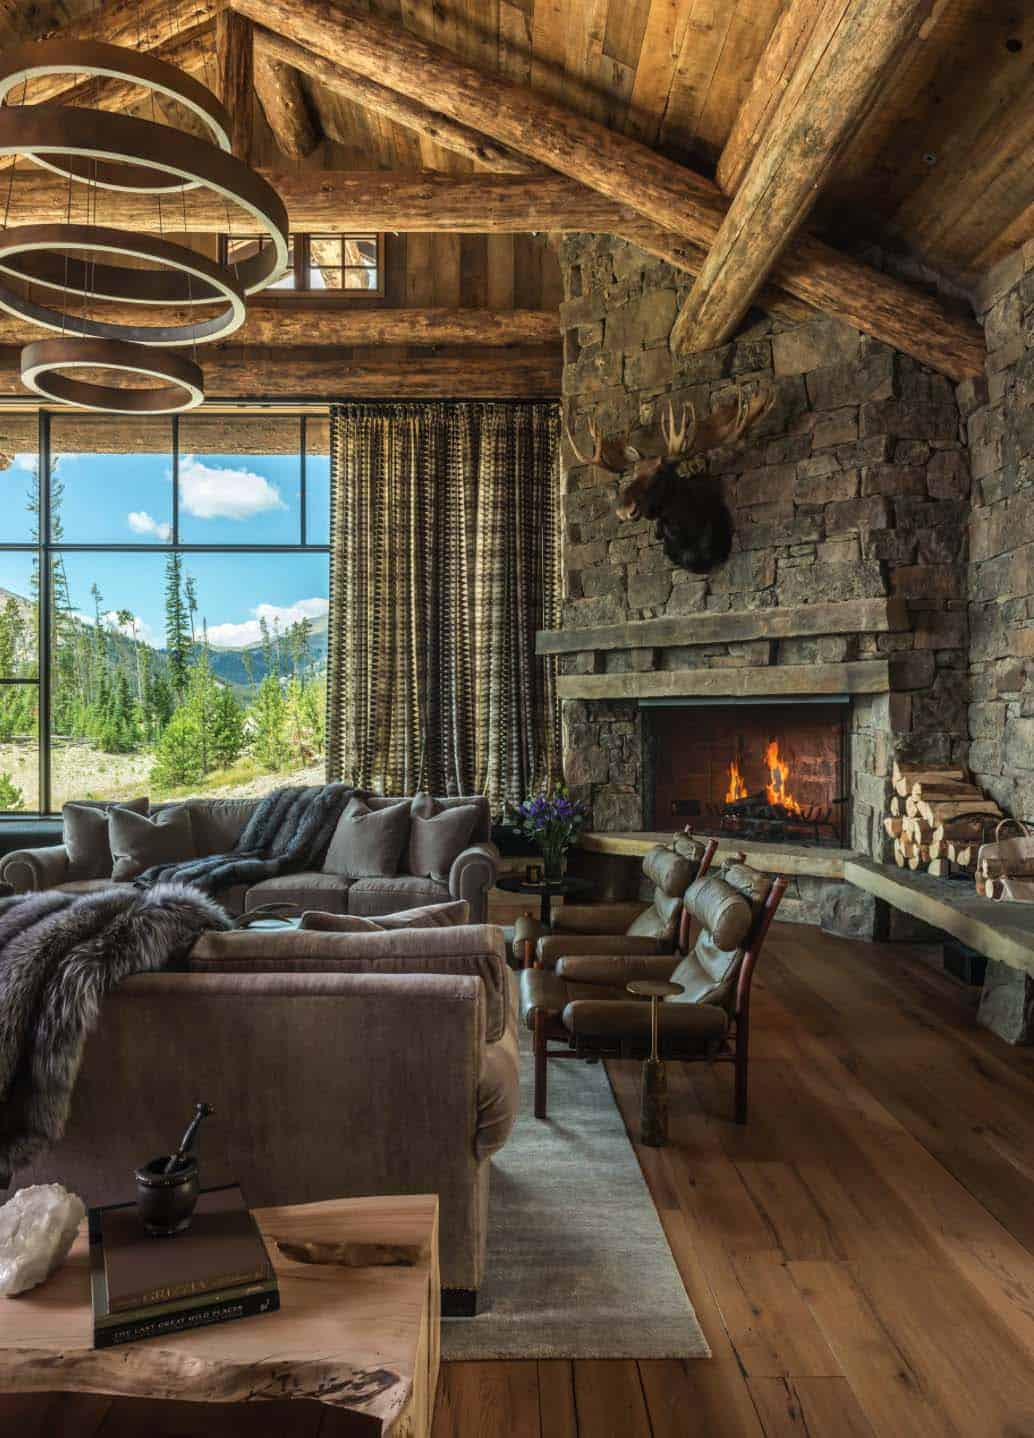 Home Decor Interior Design: Rustic Chic Mountain Home In The Rocky Mountain Foothills